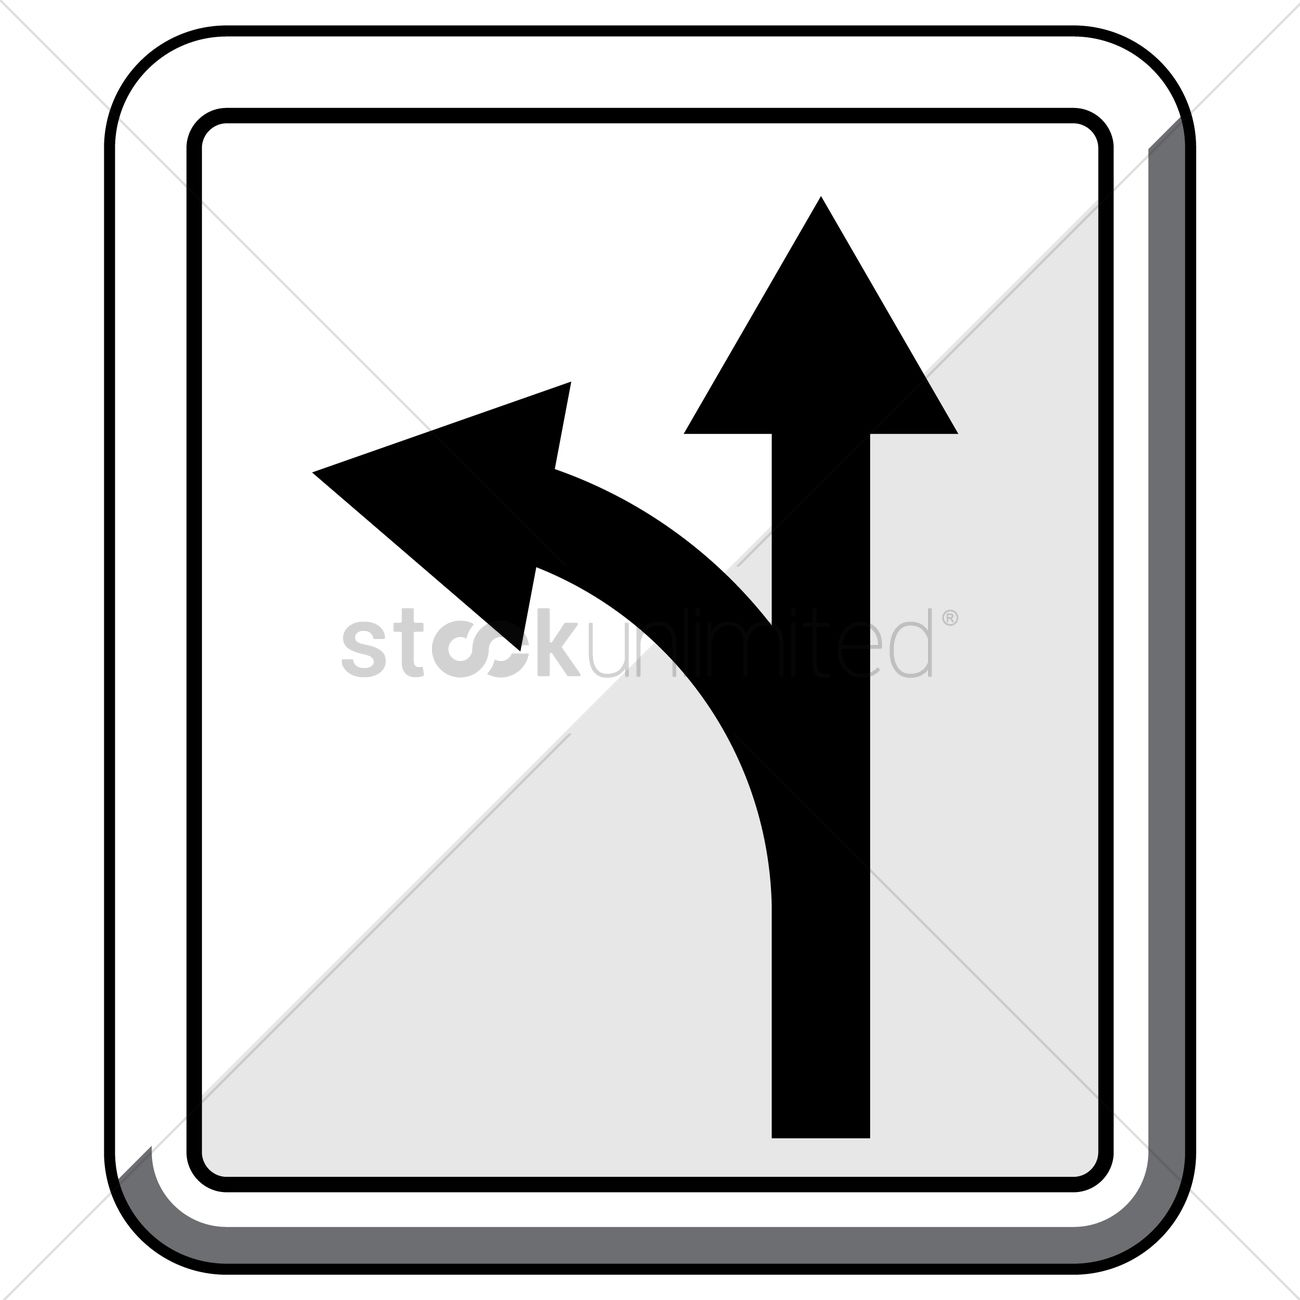 Turn left or go straight road sign Vector Image.